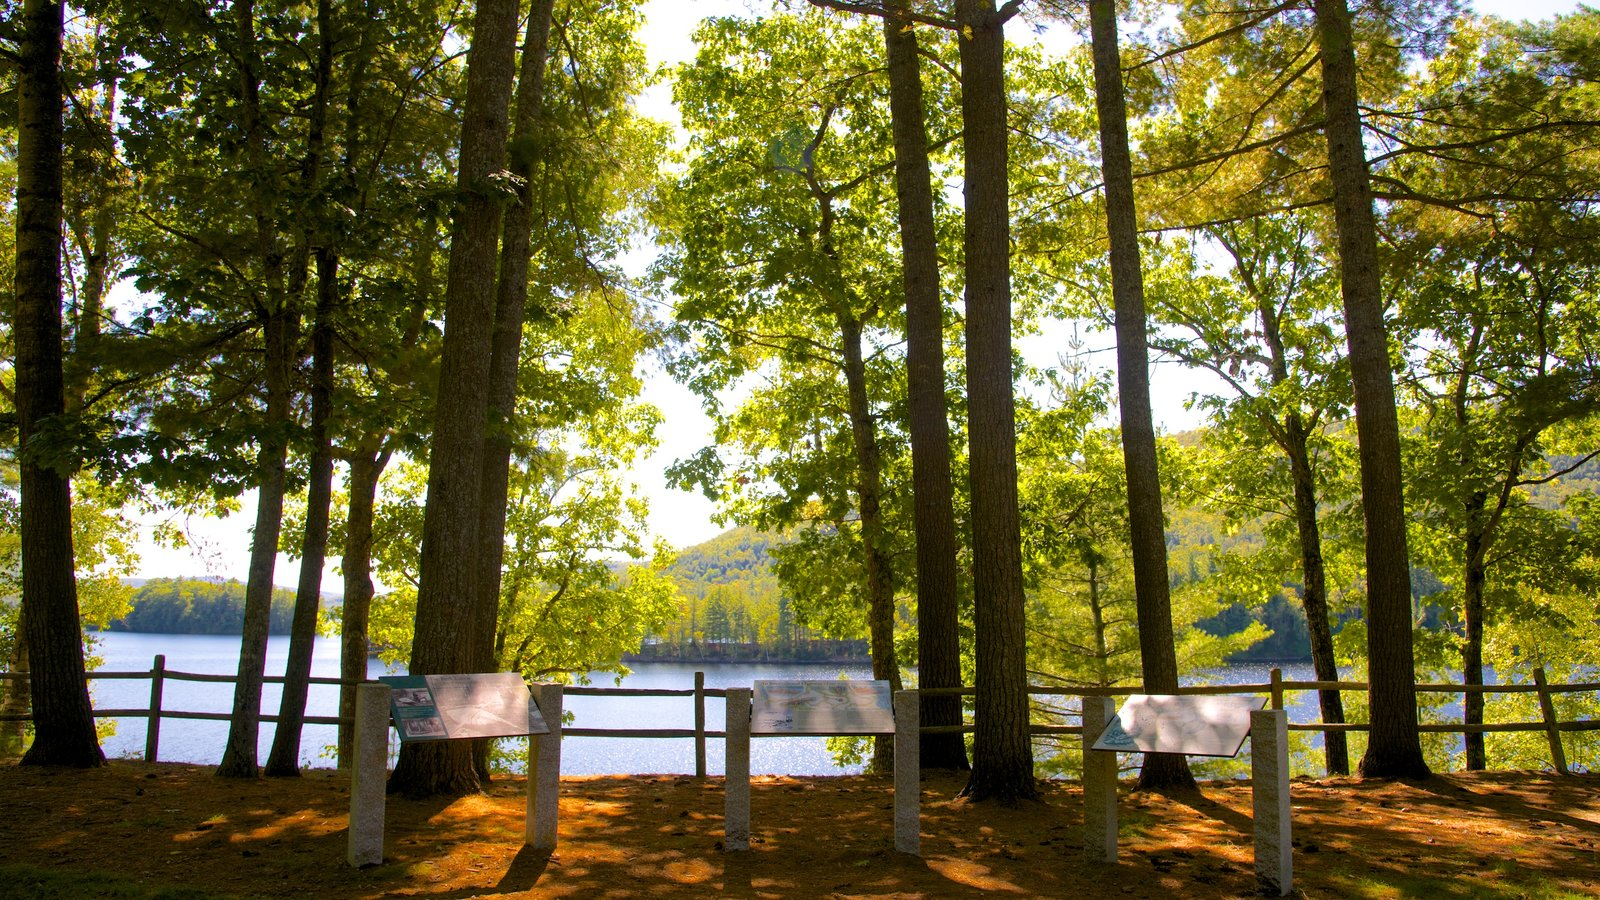 Maine which includes a lake or waterhole and tranquil scenes